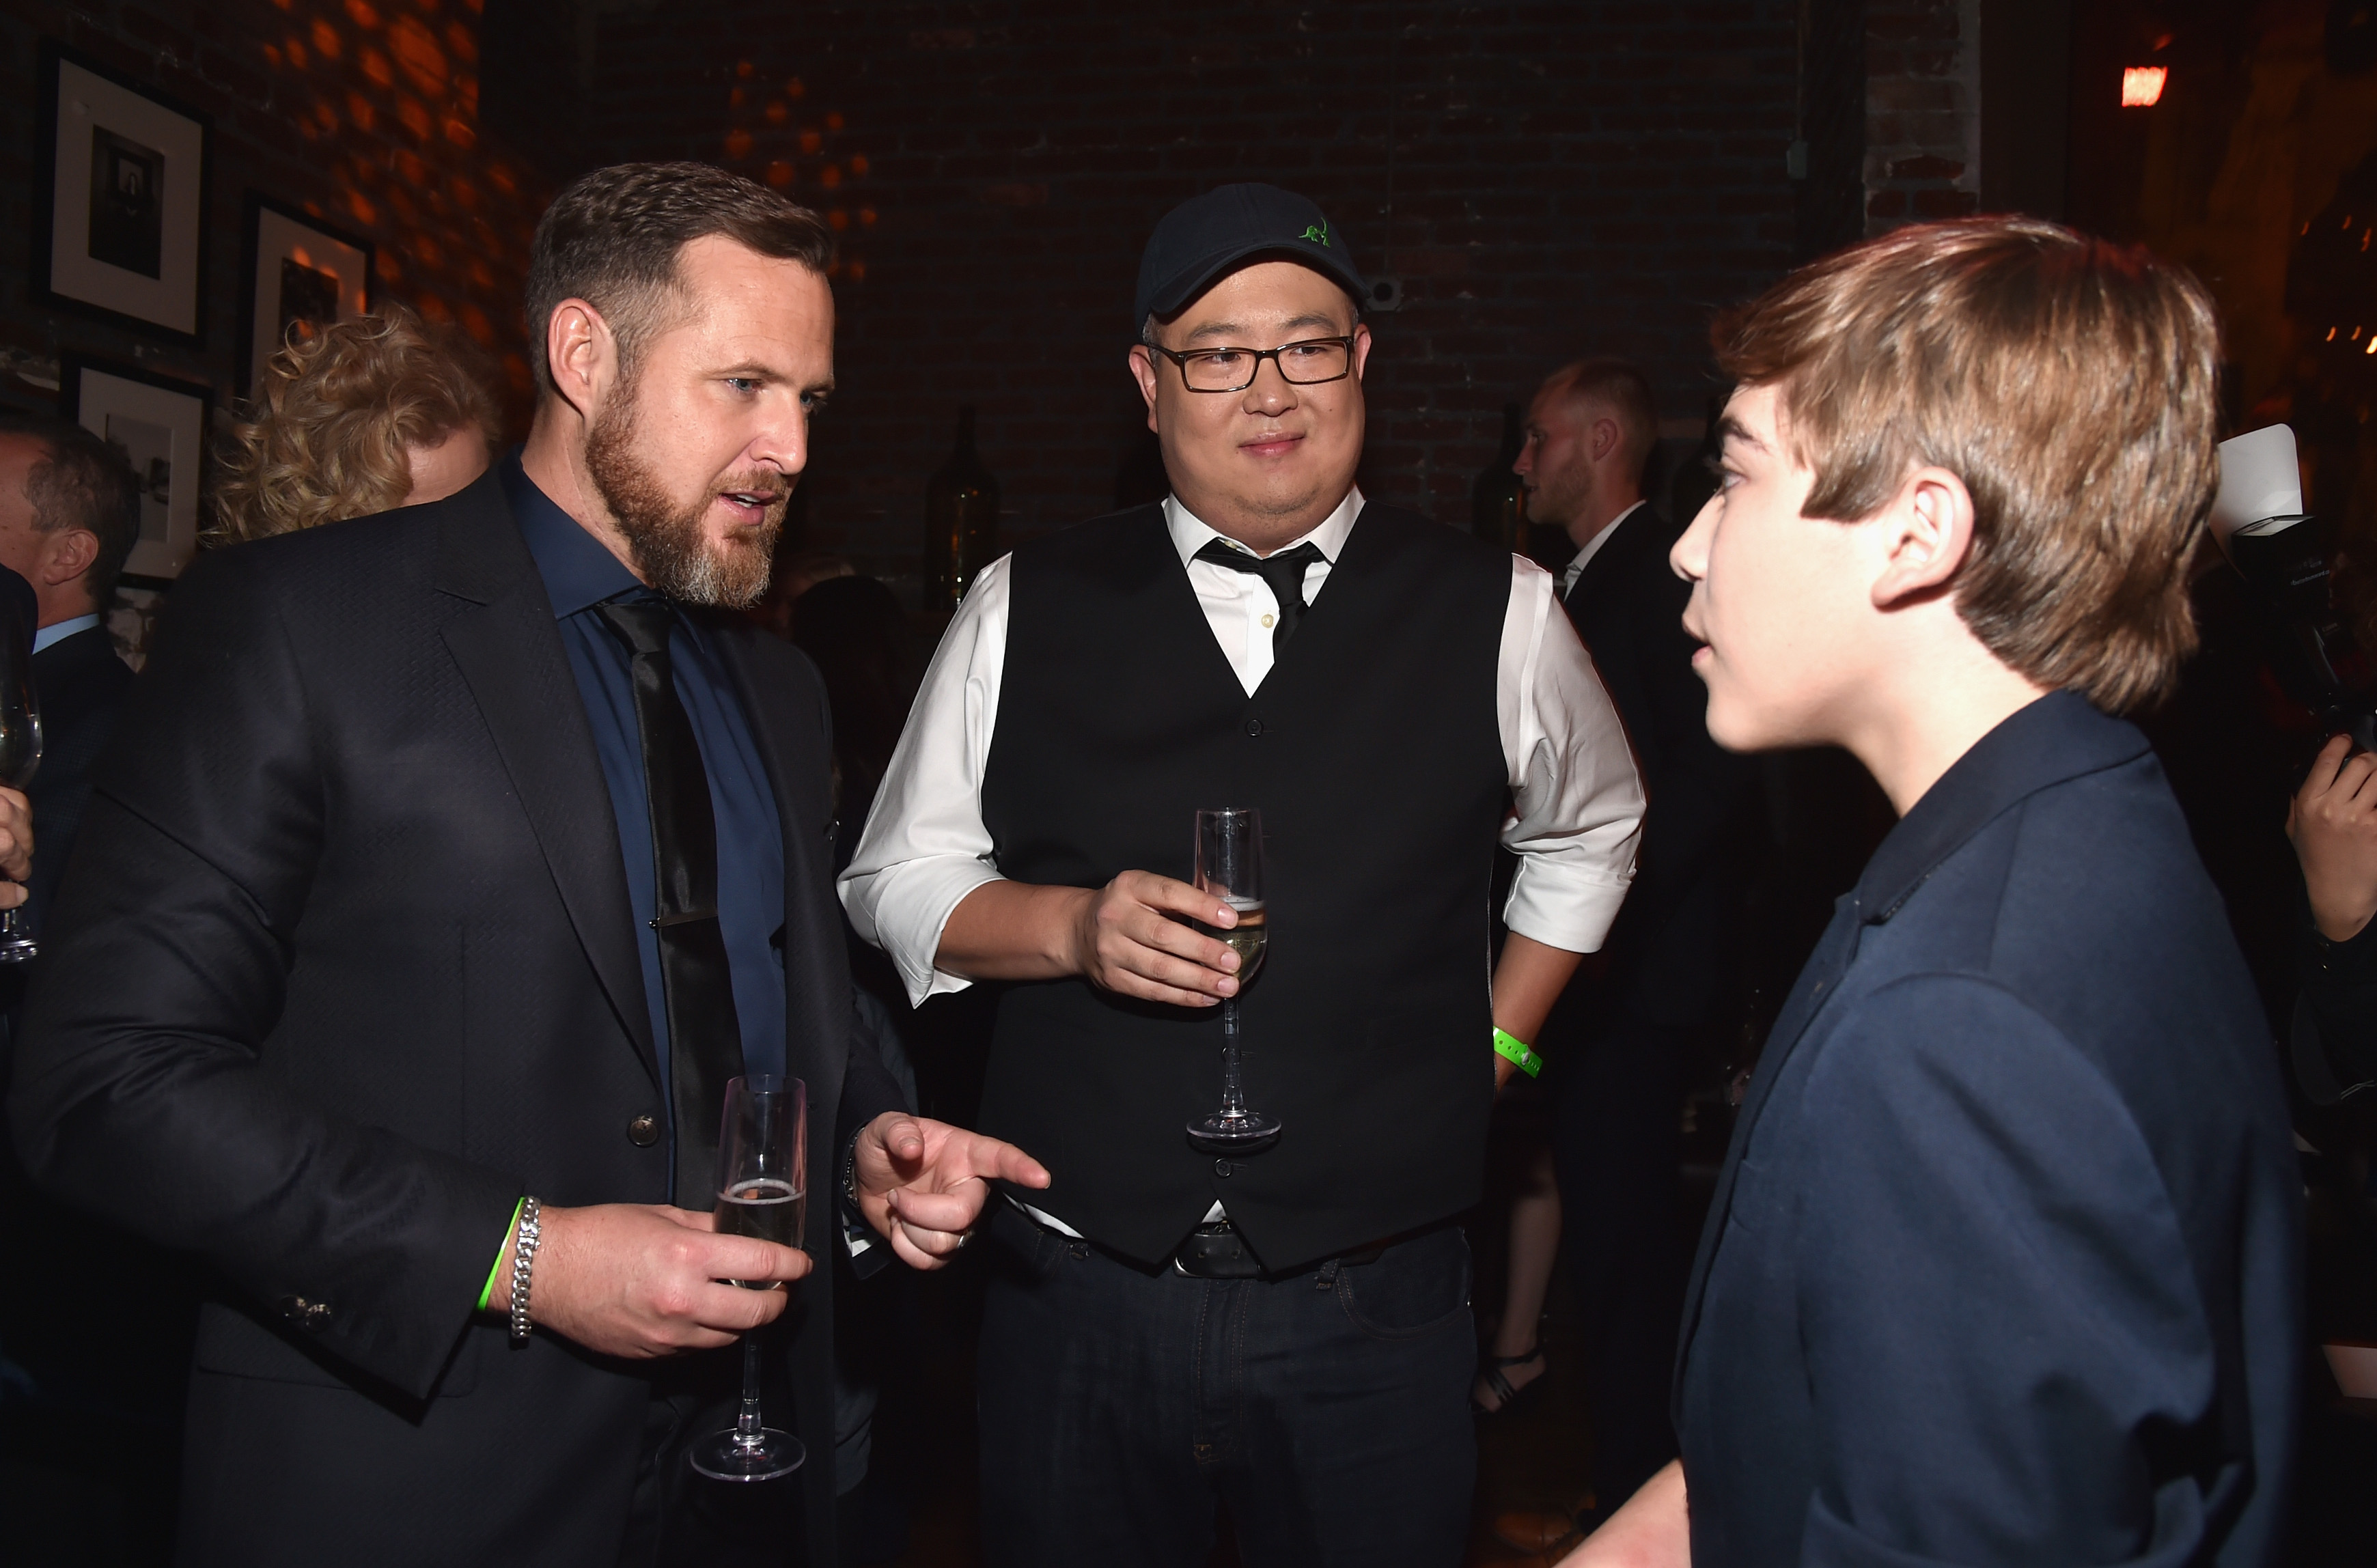 HOLLYWOOD, CA - NOVEMBER 17: (L-R) Actor A.J. Buckley, director Peter Sohn, and actor Raymond Ochoa attend the World Premiere Of Disney-Pixar's THE GOOD DINOSAUR at the El Capitan Theatre on November 17, 2015 in Hollywood, California. (Photo by Alberto E. Rodriguez/Getty Images for Disney) *** Local Caption *** A.J. Buckley; Peter Sohn; Raymond Ochoa